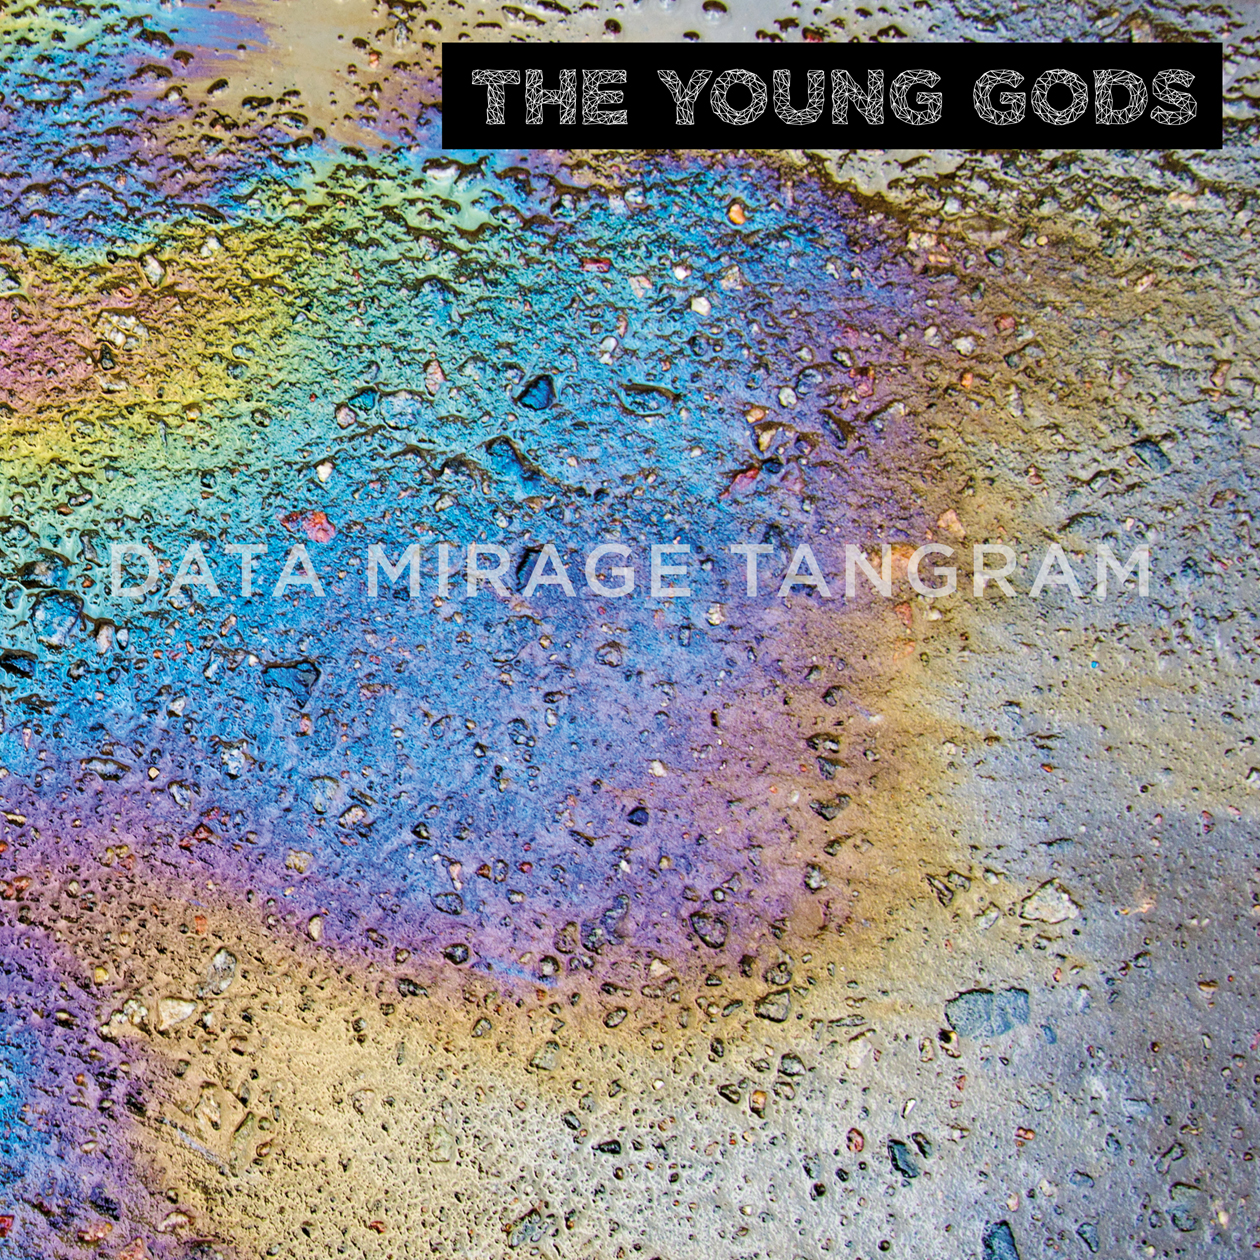 "THE YOUNG GODS ""Data mirage tangram"" DOUBLE VINYL"